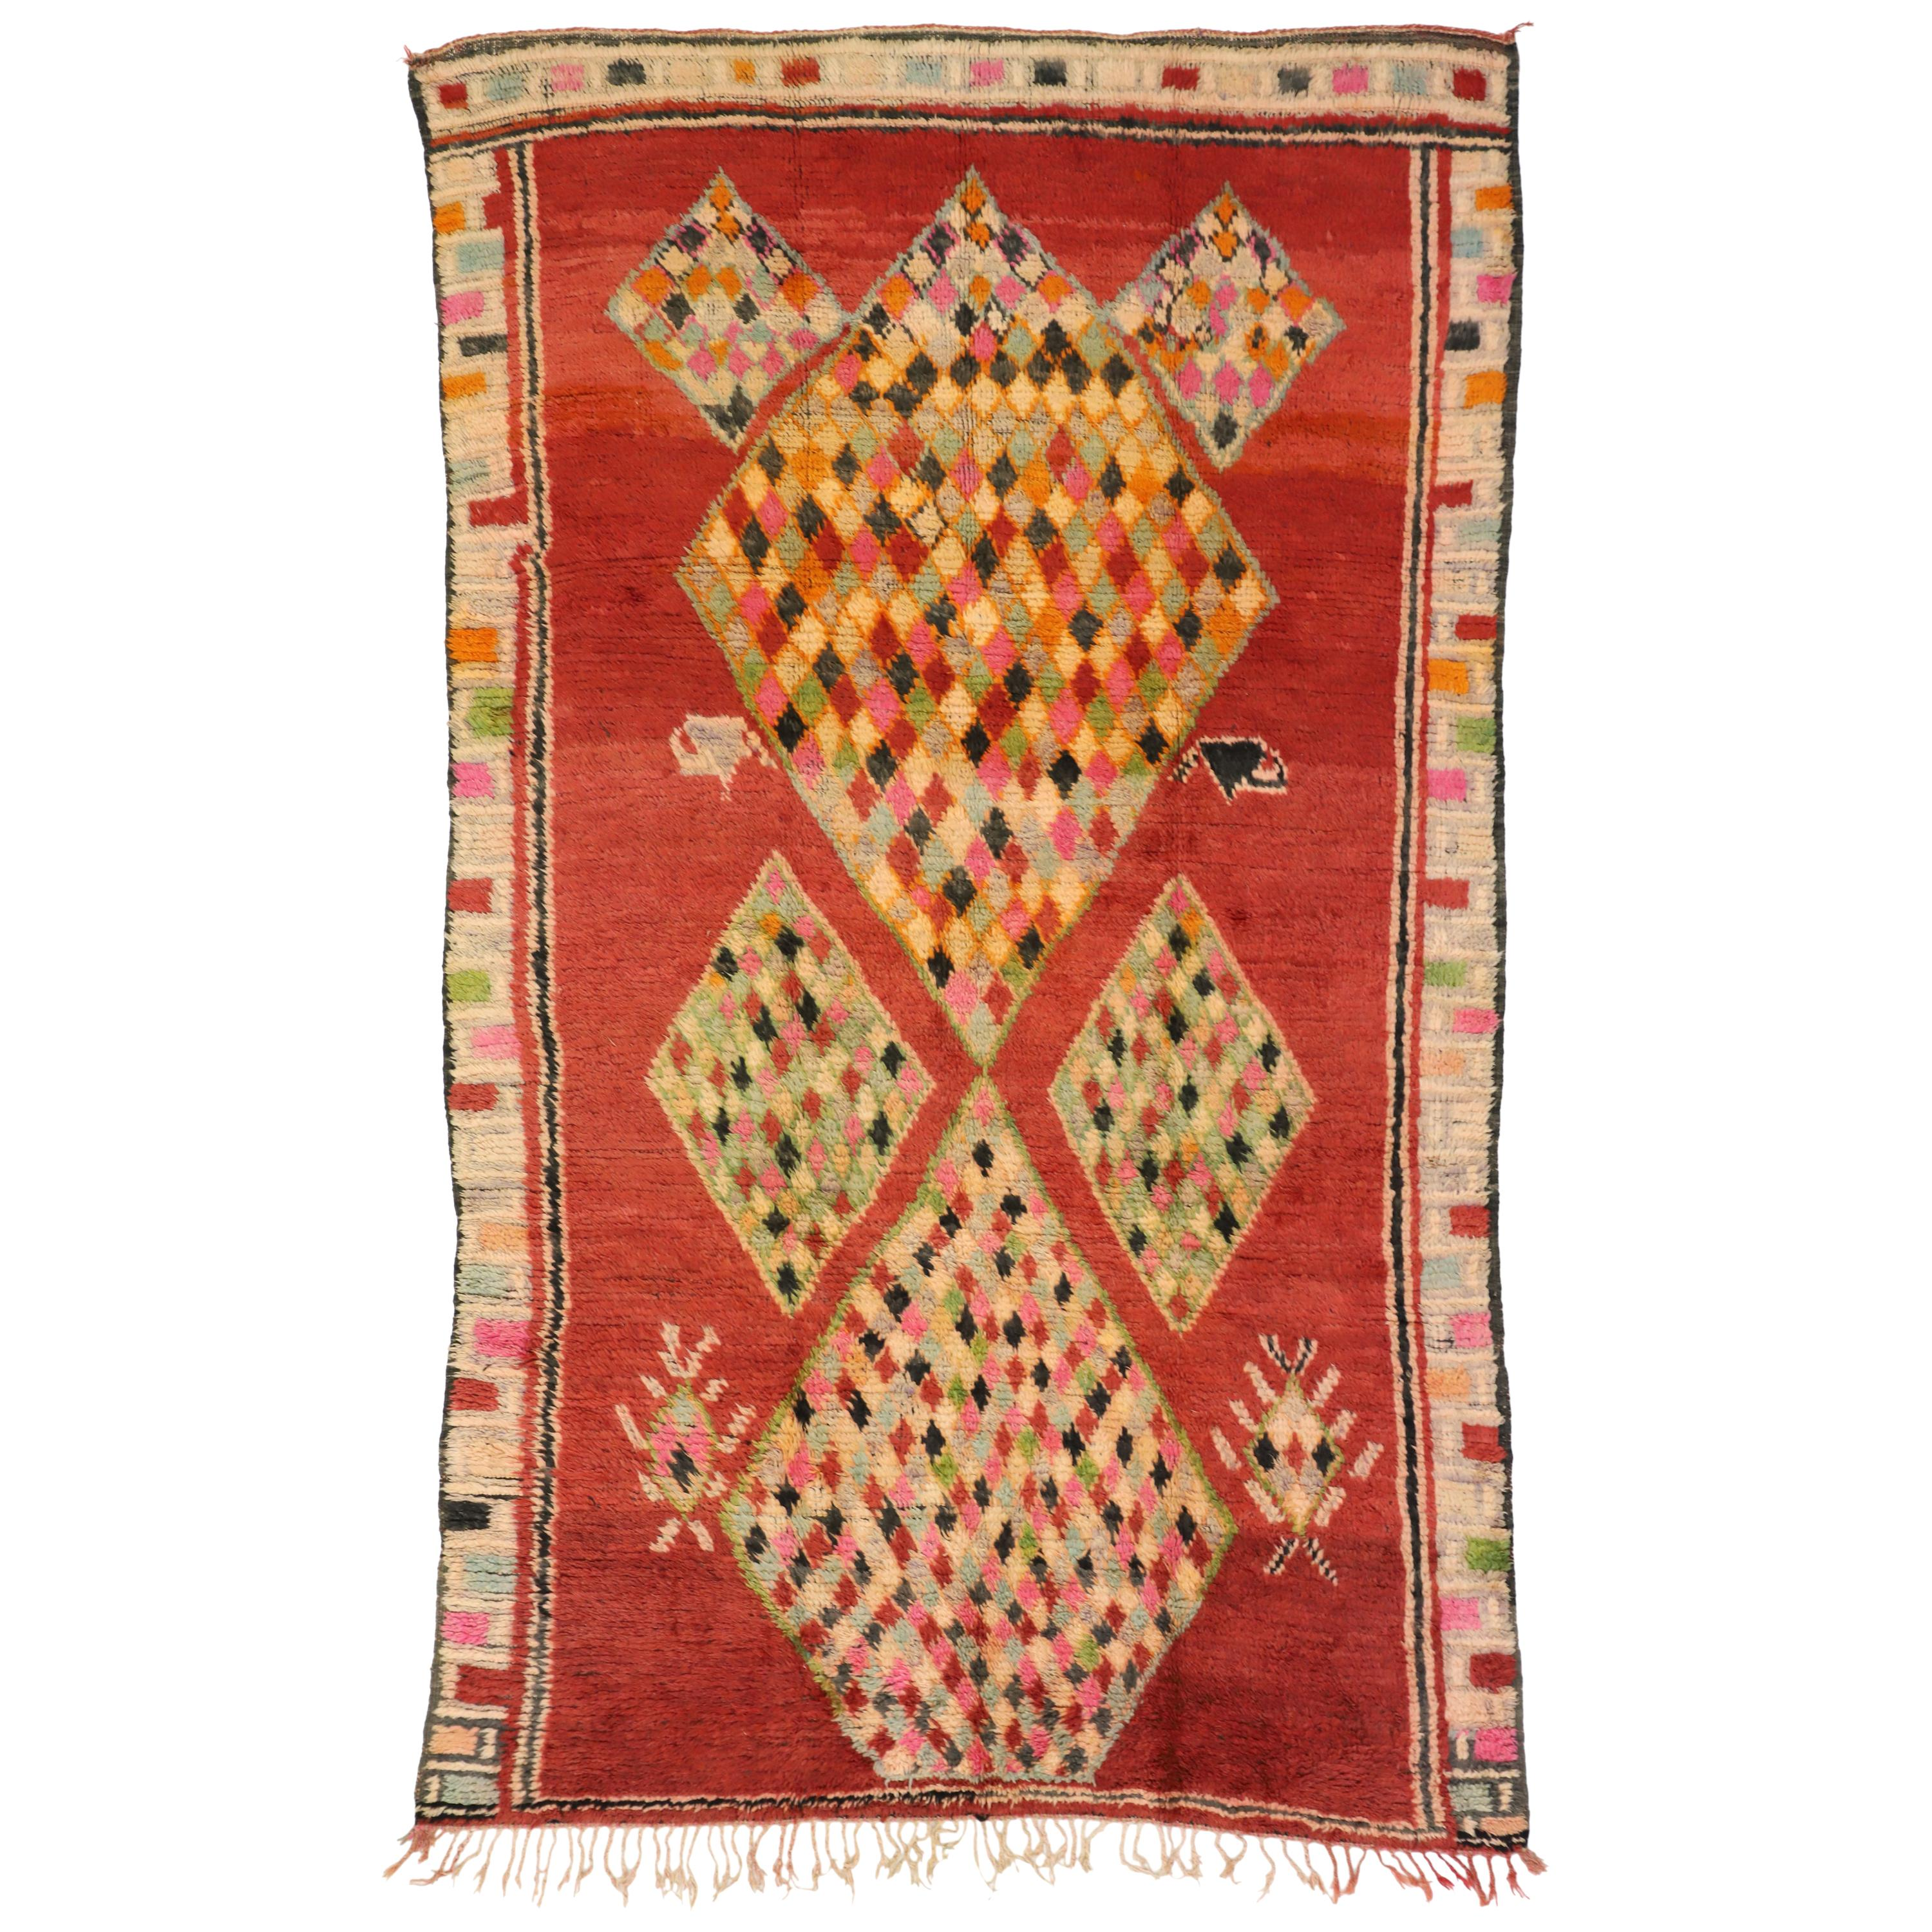 Vintage Berber Moroccan Boujad Rug with Tribal Style